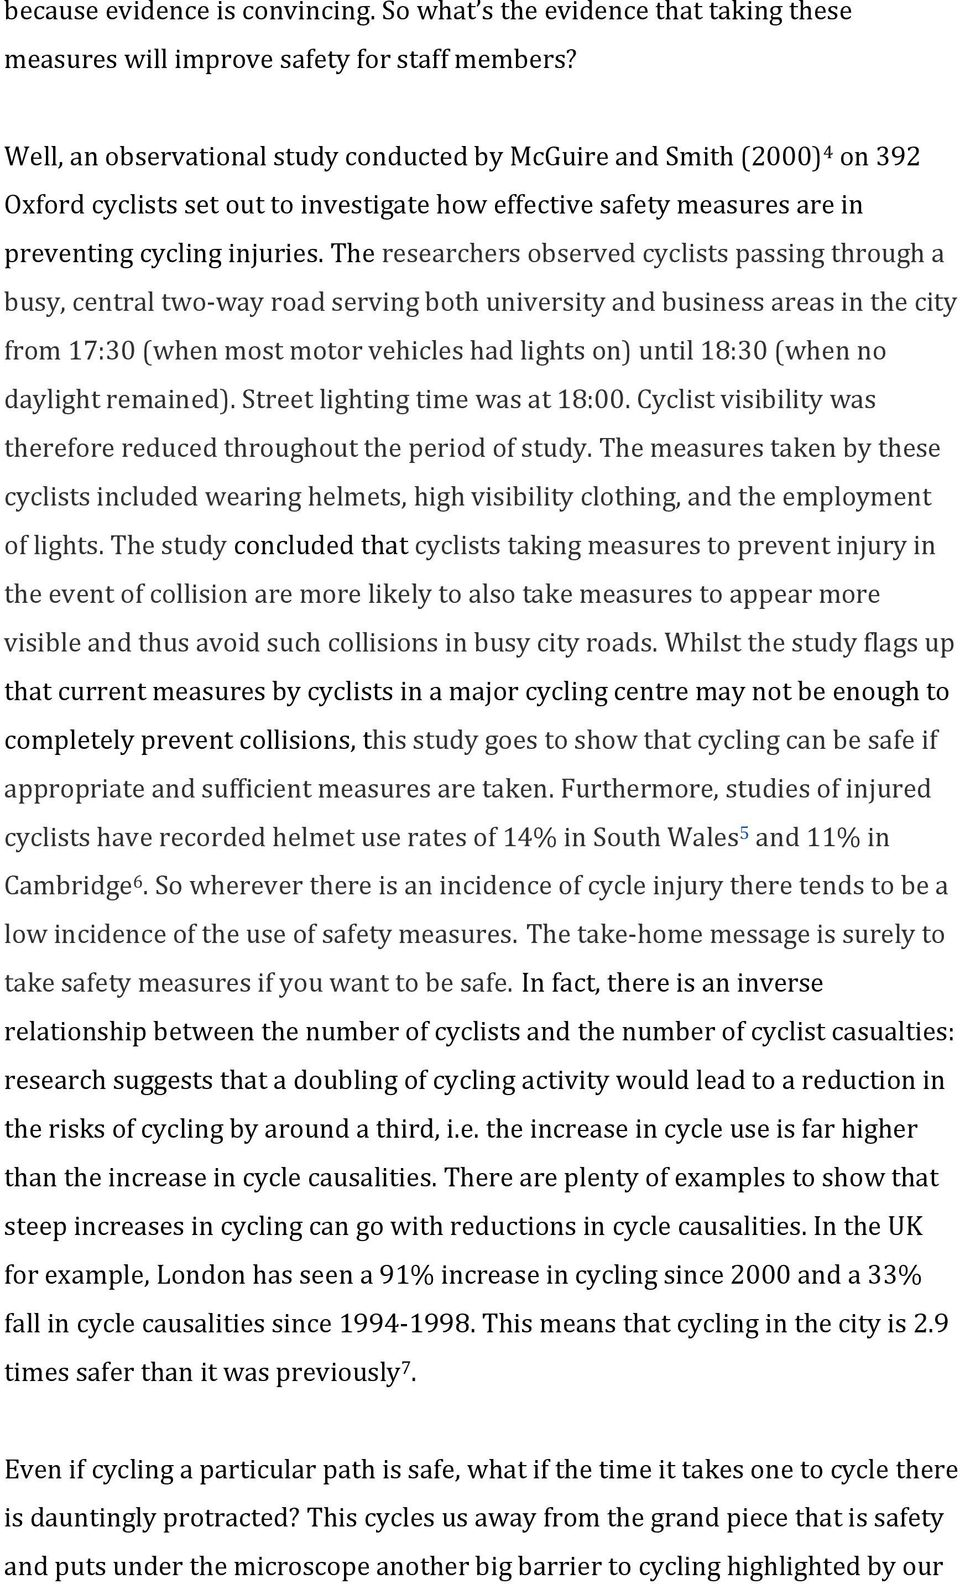 The researchers observed cyclists passing through a busy, central two-way road serving both university and business areas in the city from 17:30 (when most motor vehicles had lights on) until 18:30